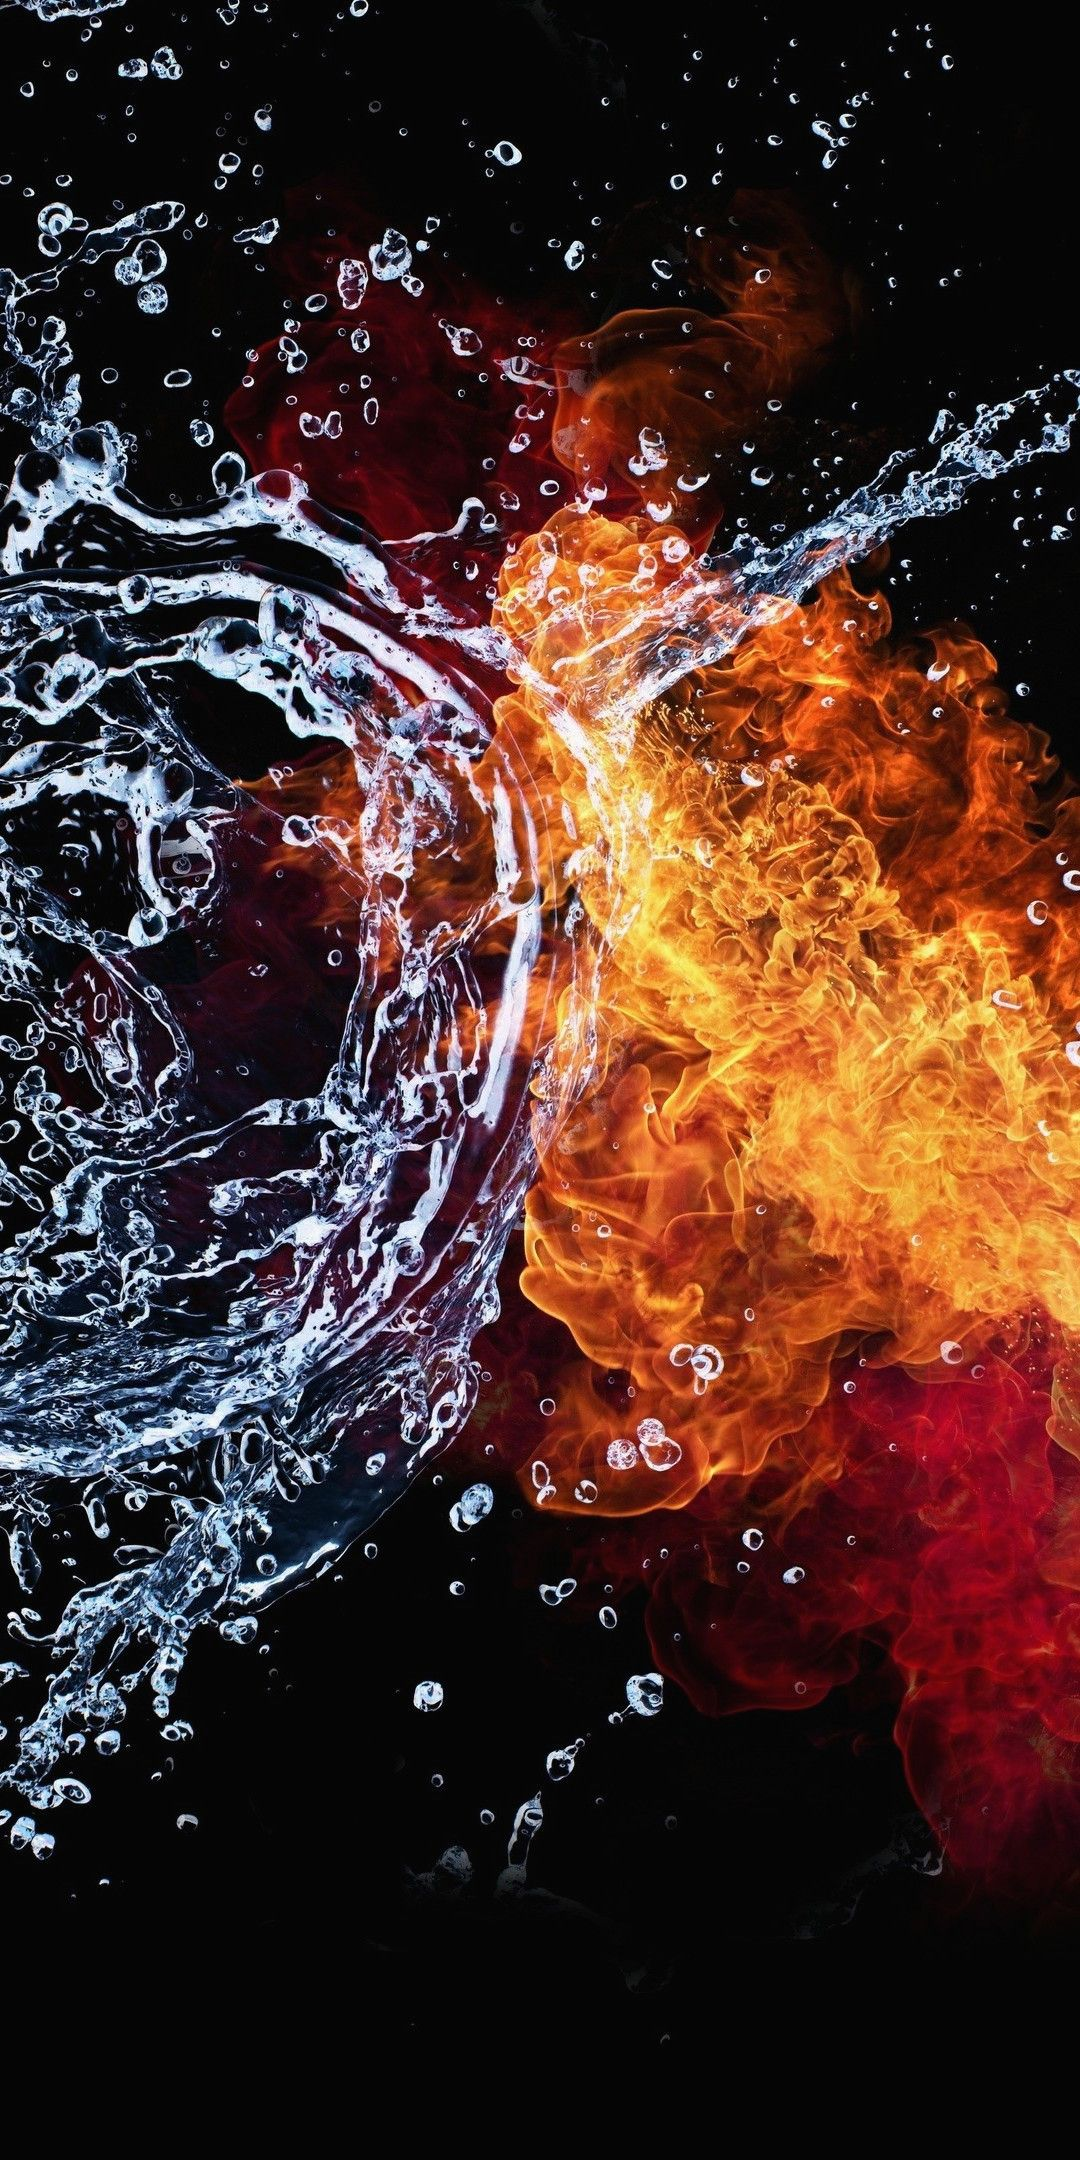 4k Wallpaper Download For Android Mobile Fresh Fire Baptism Of Fire And Water 1080x2160 Download Hd Wallpaper Wallpapertip